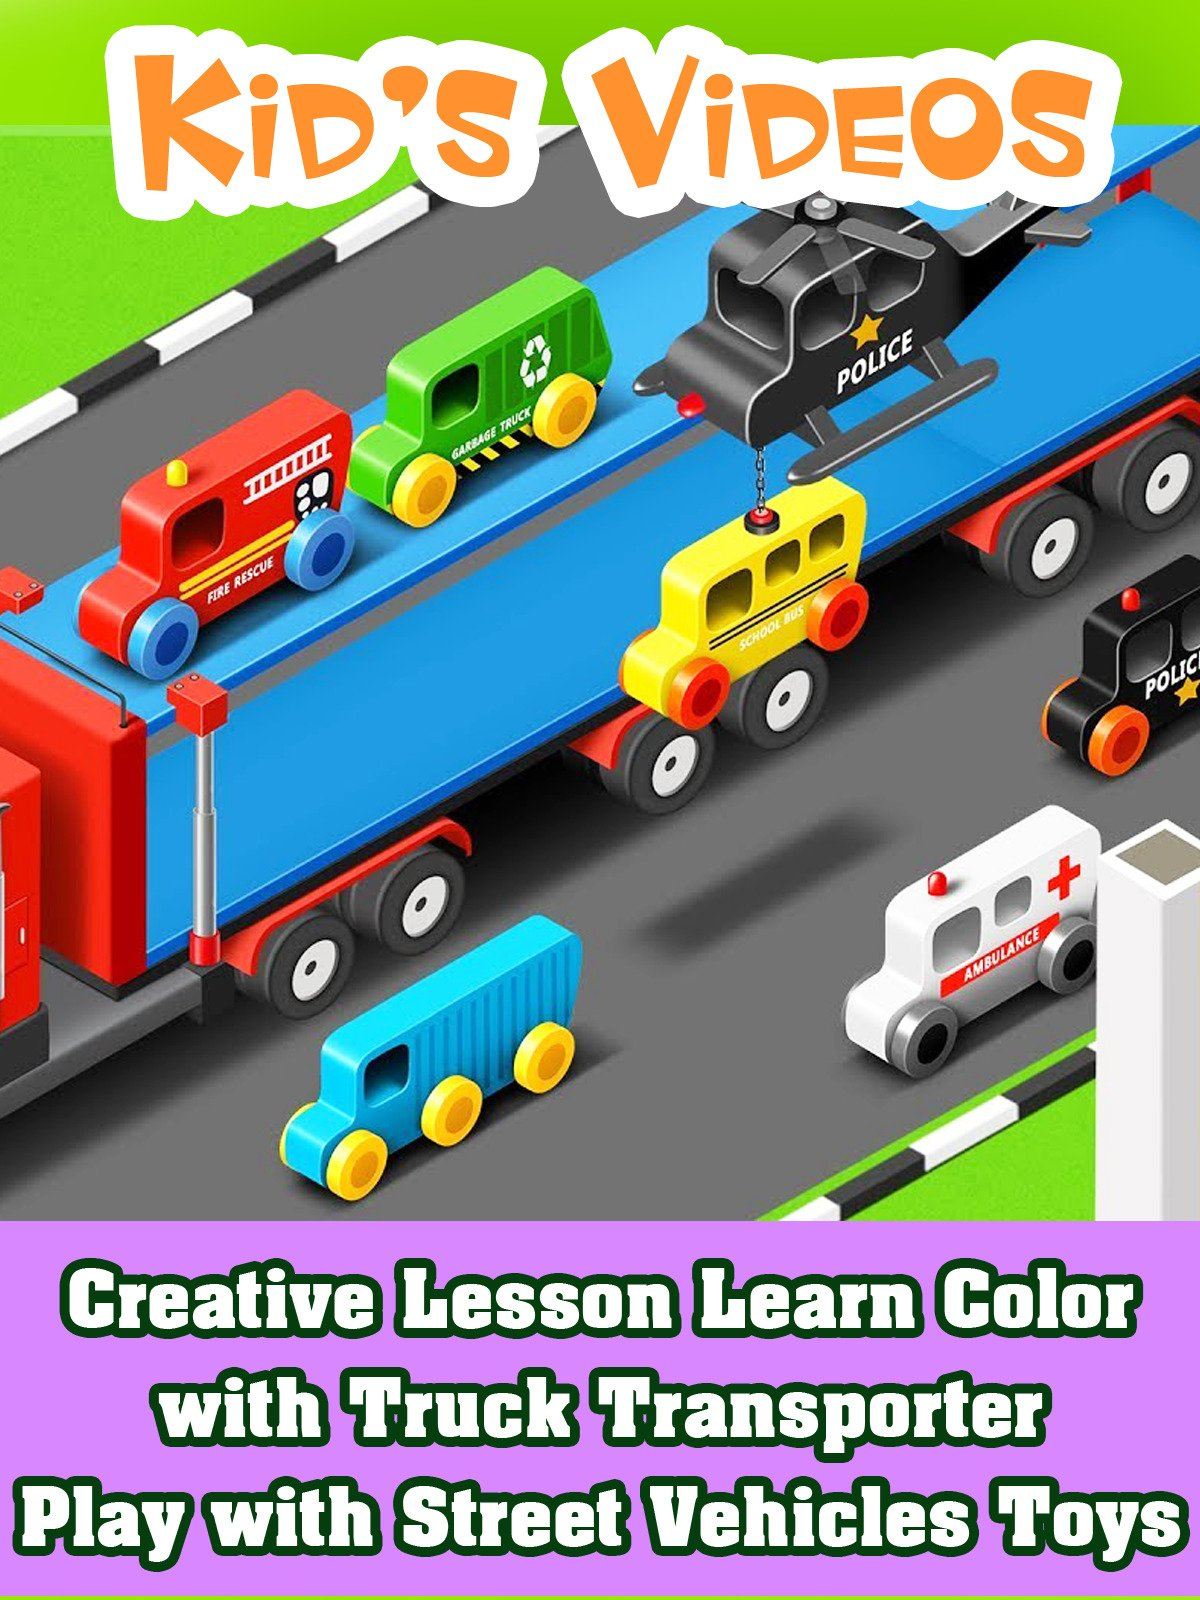 Creative Lesson Learn Color with Truck Transporter